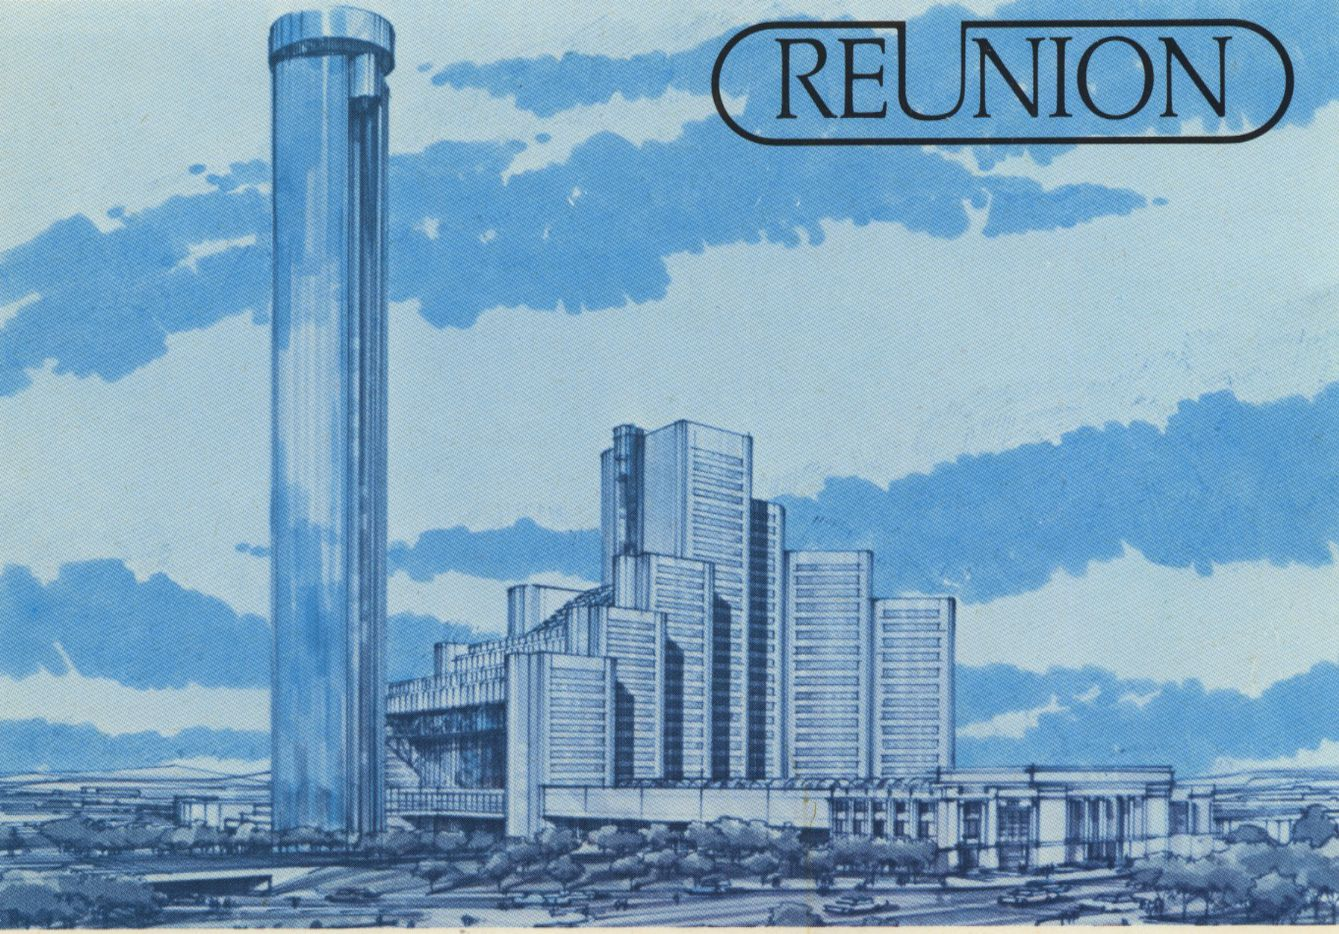 Early designs for downtown's Reunion project includes a big round tower.